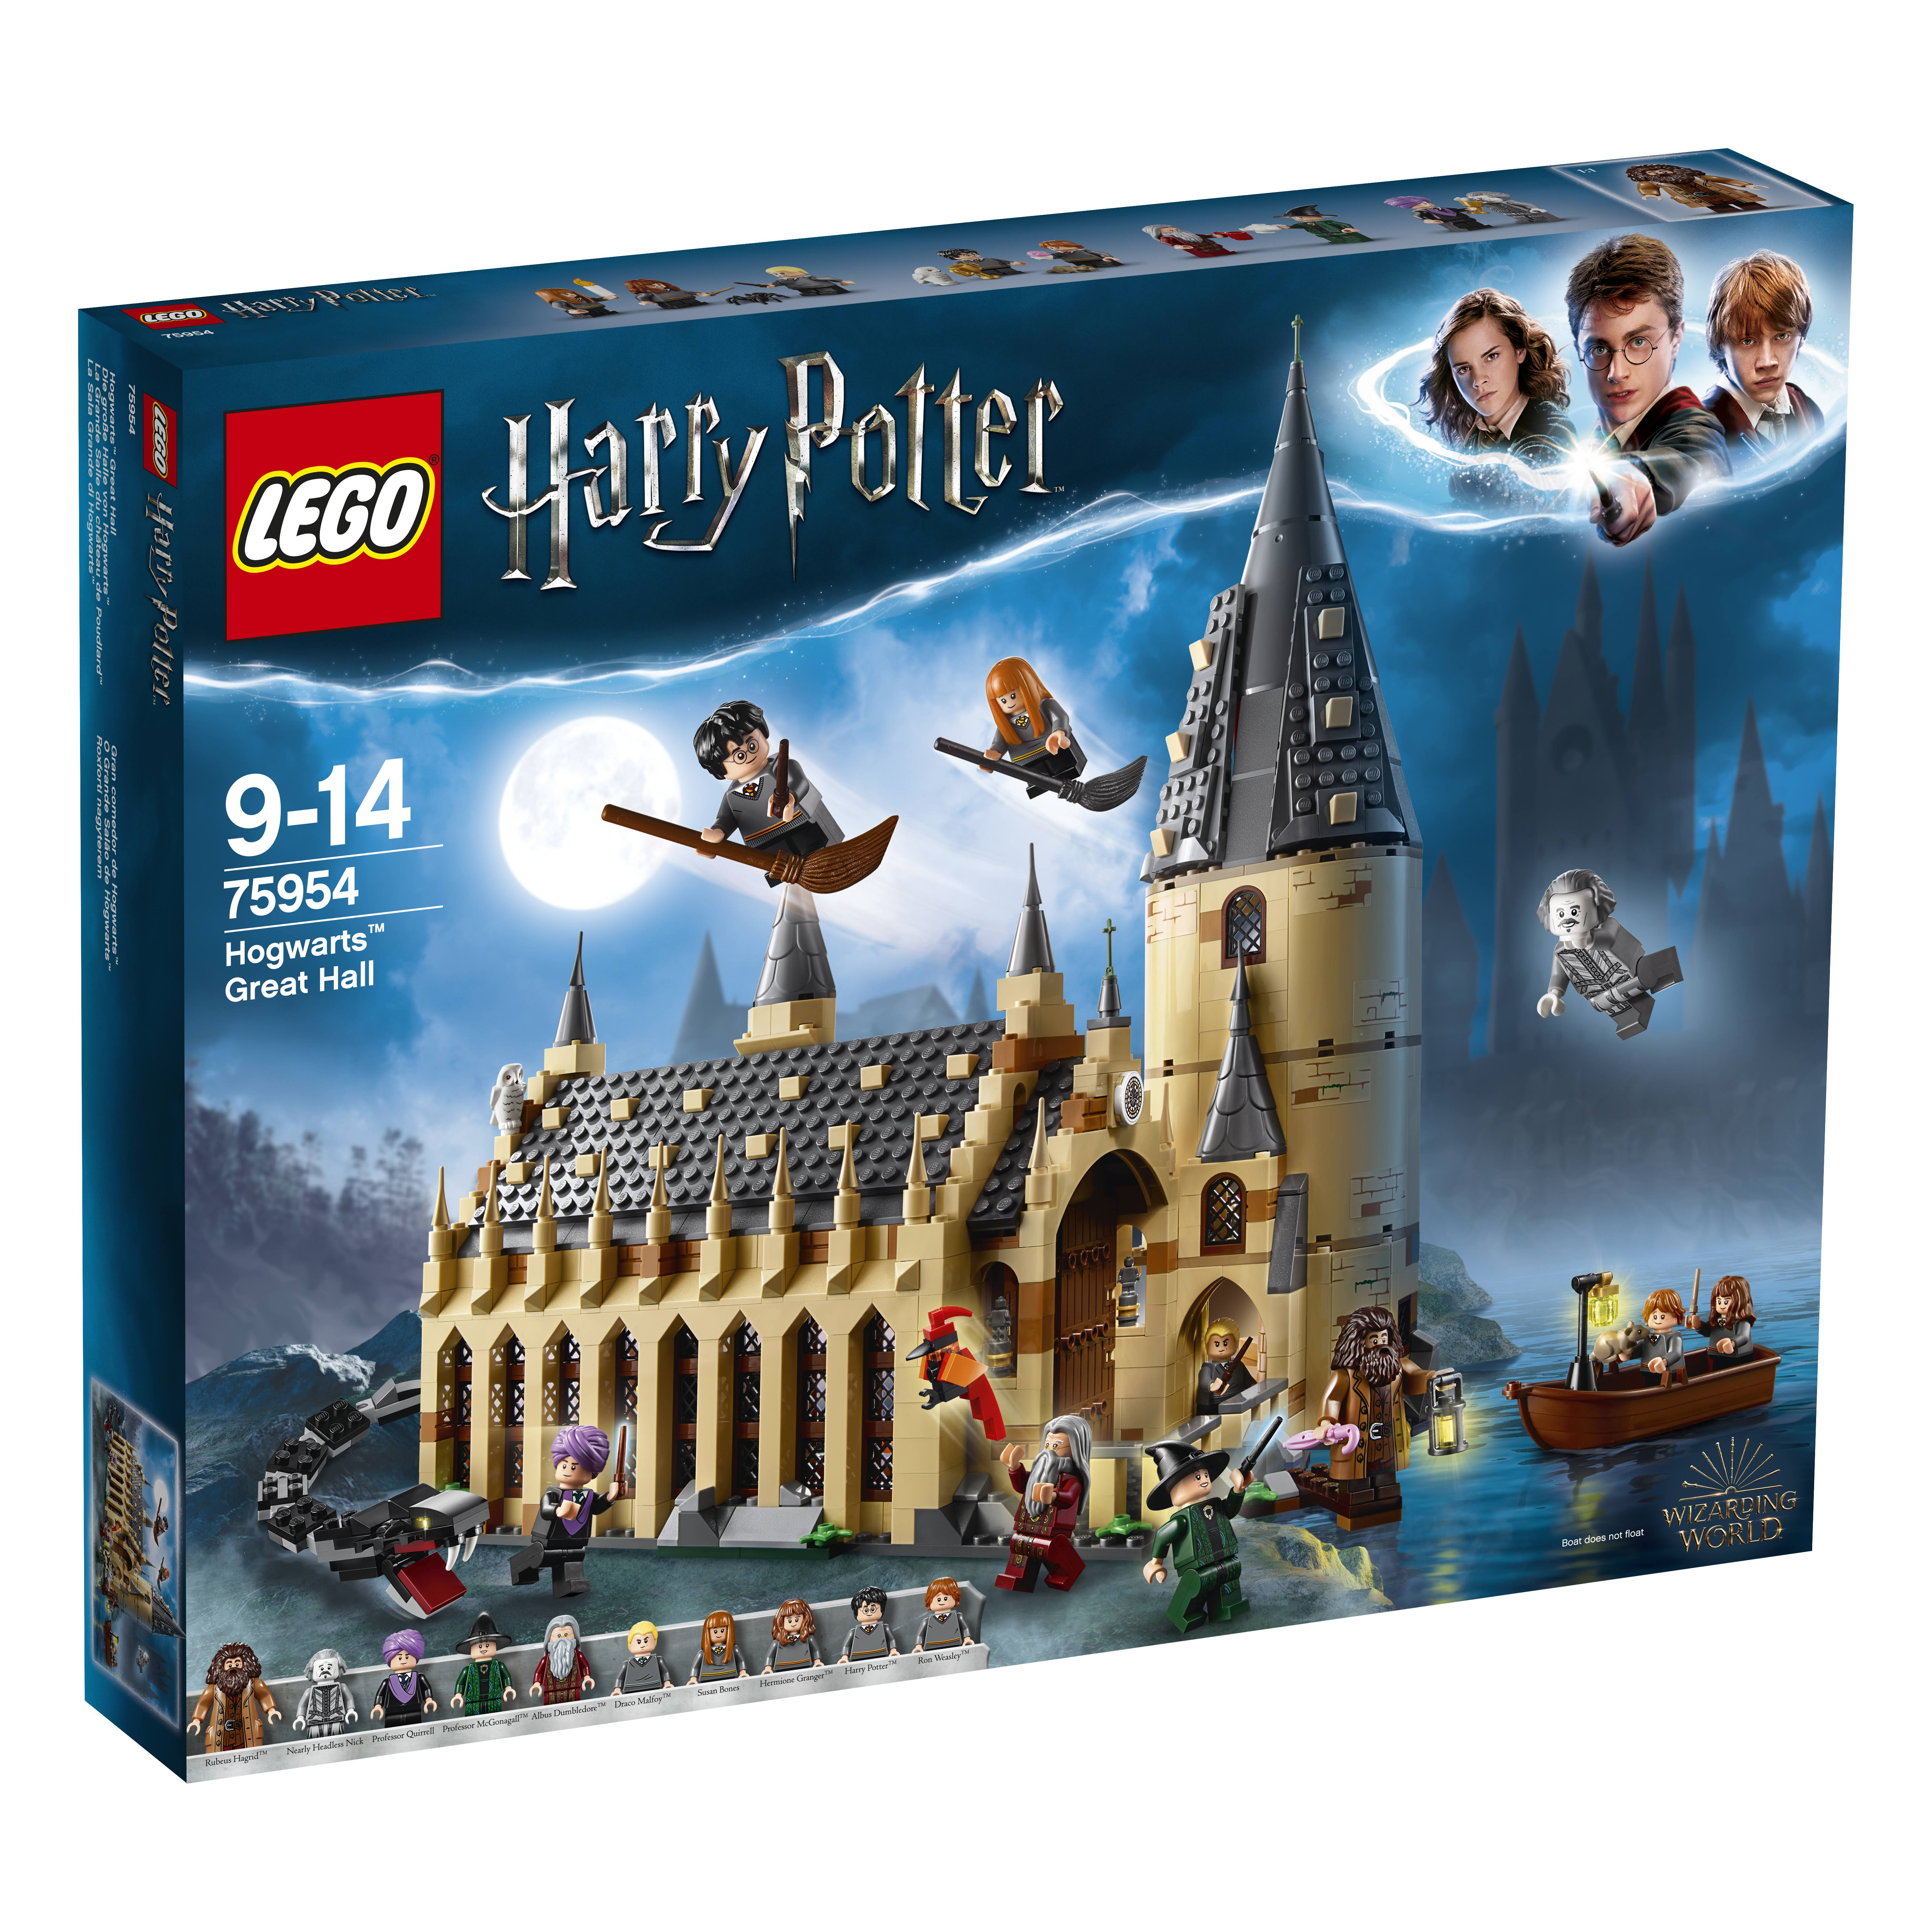 Lego Harry Potter Hogwarts Great Hall Building Toy